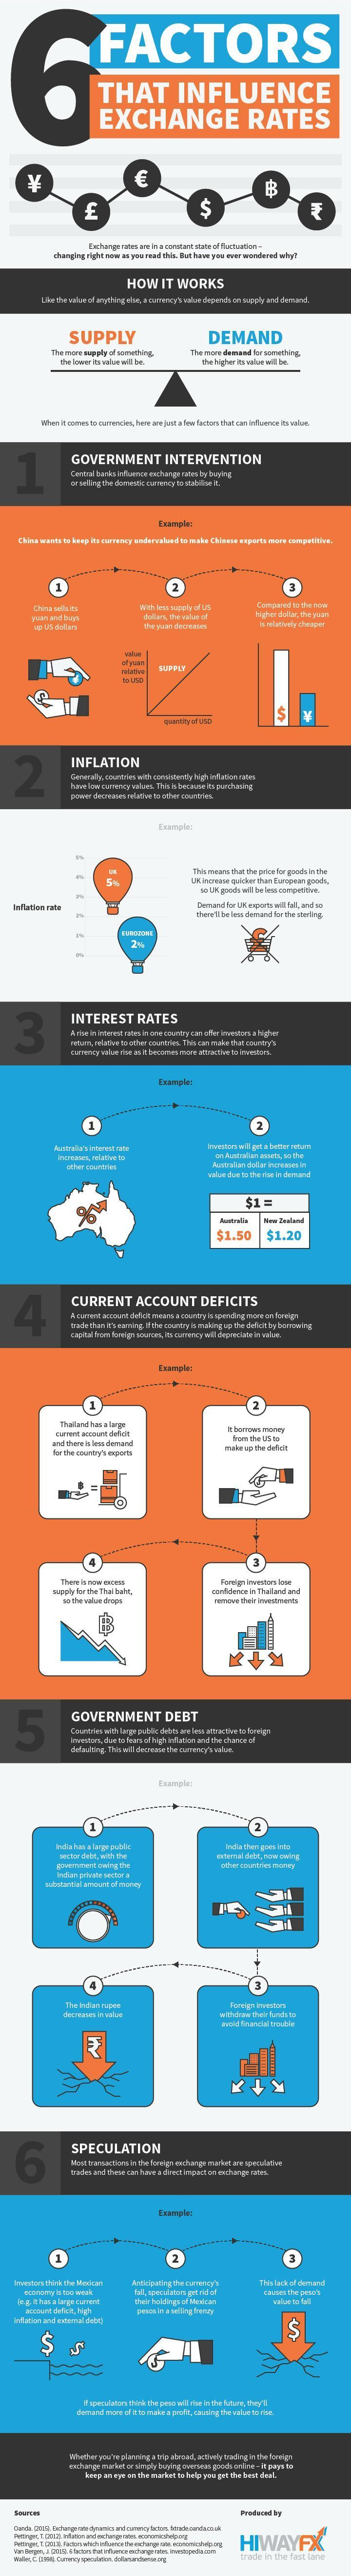 6 Factors That Influence Exchange Rates Infographic With Images